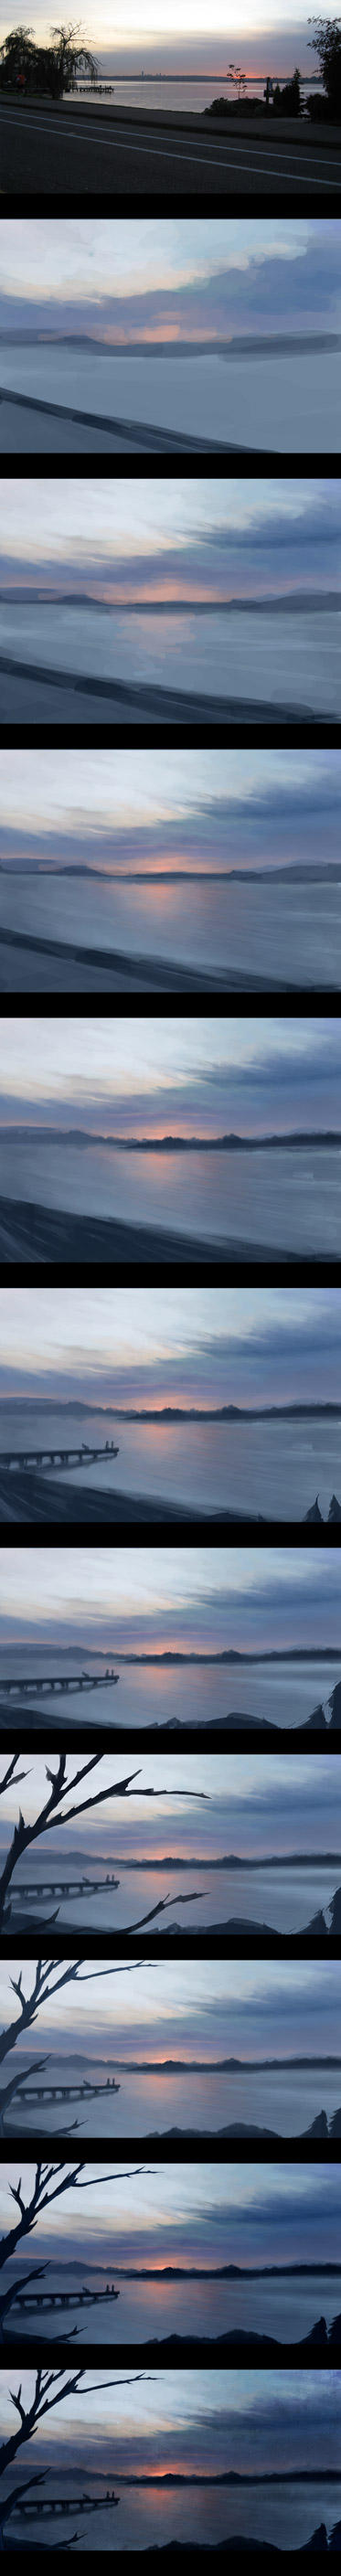 Dusk painting process by Firebli9ht